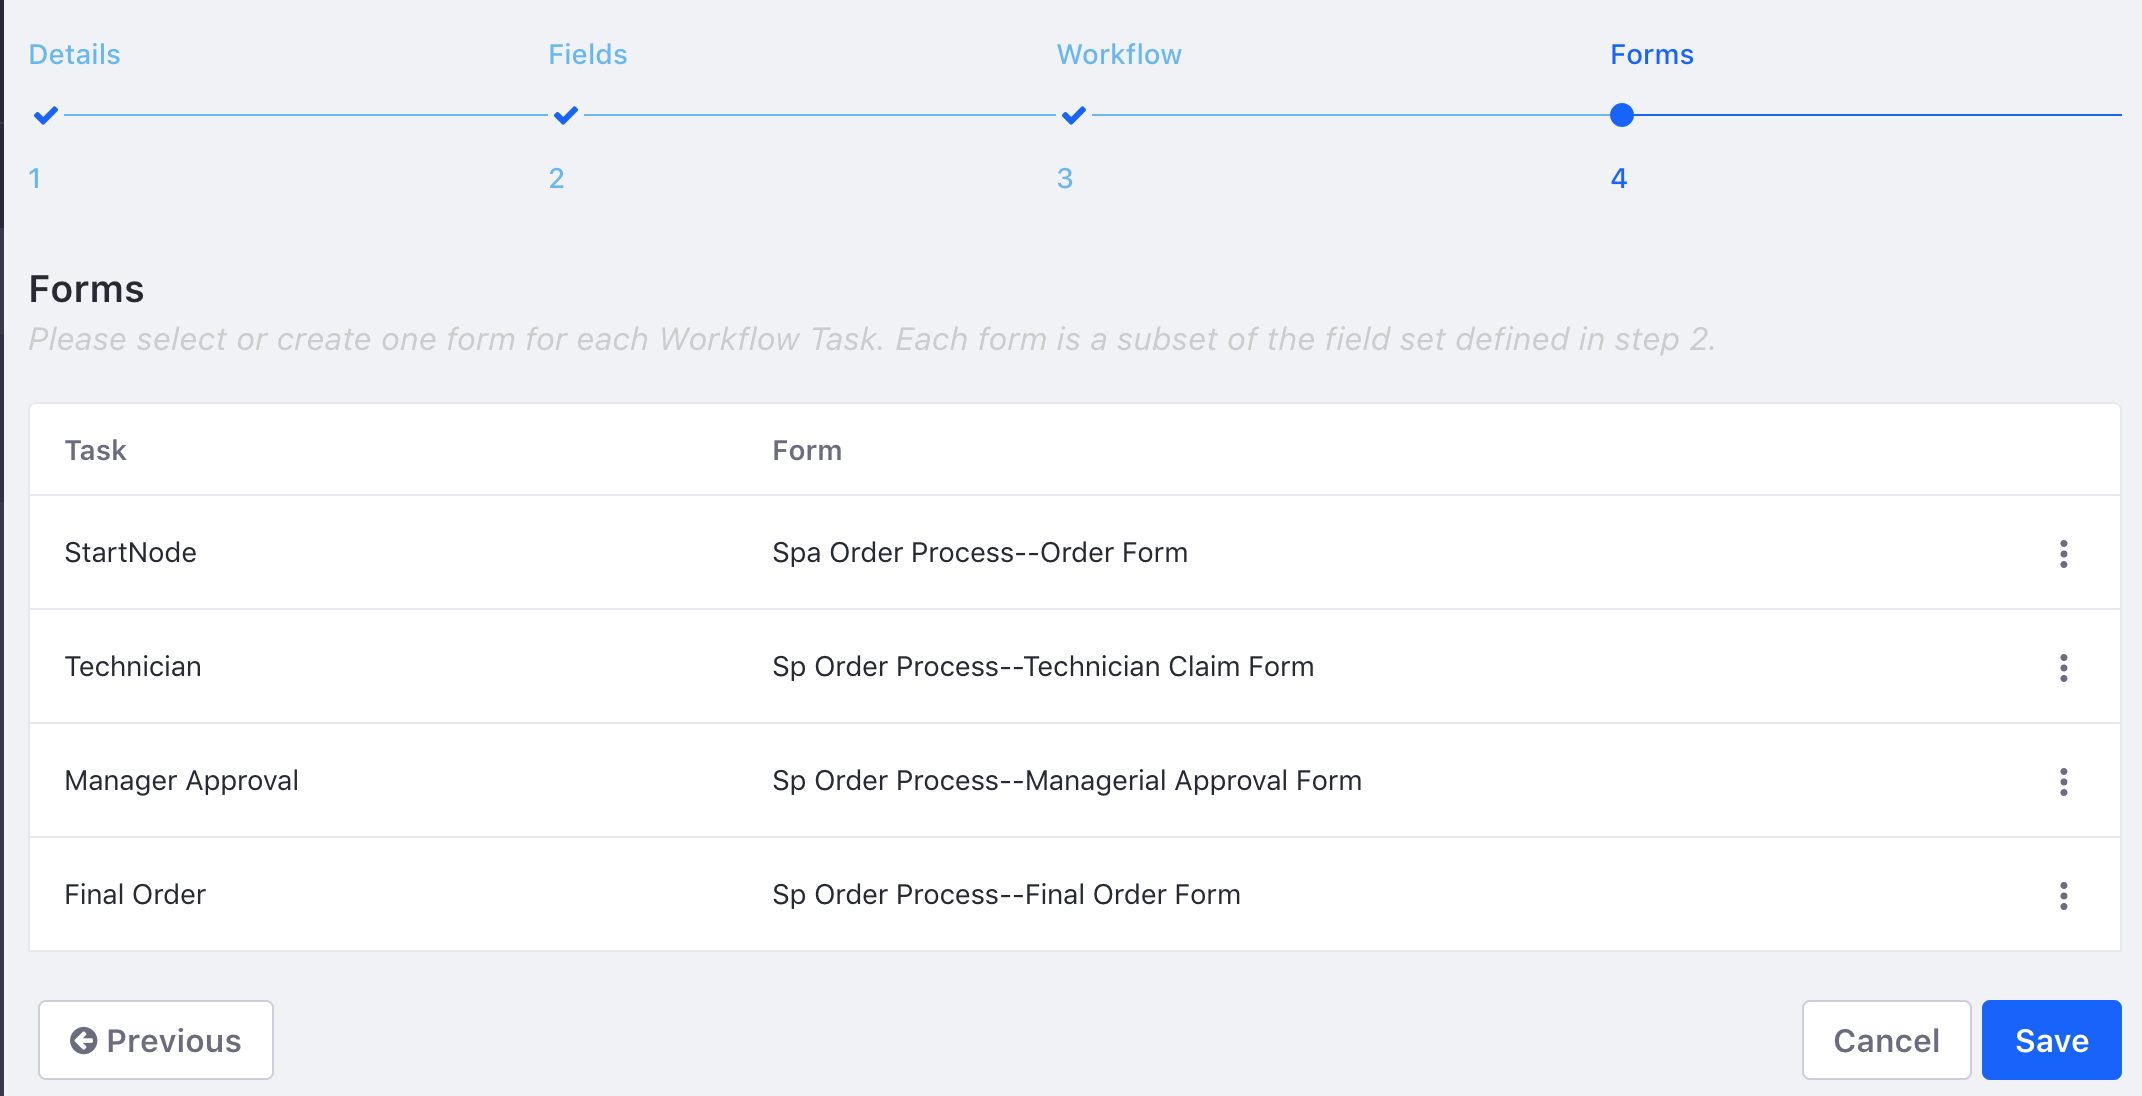 Figure 4: Assign a form to each task in the workflow, and for the initial state.